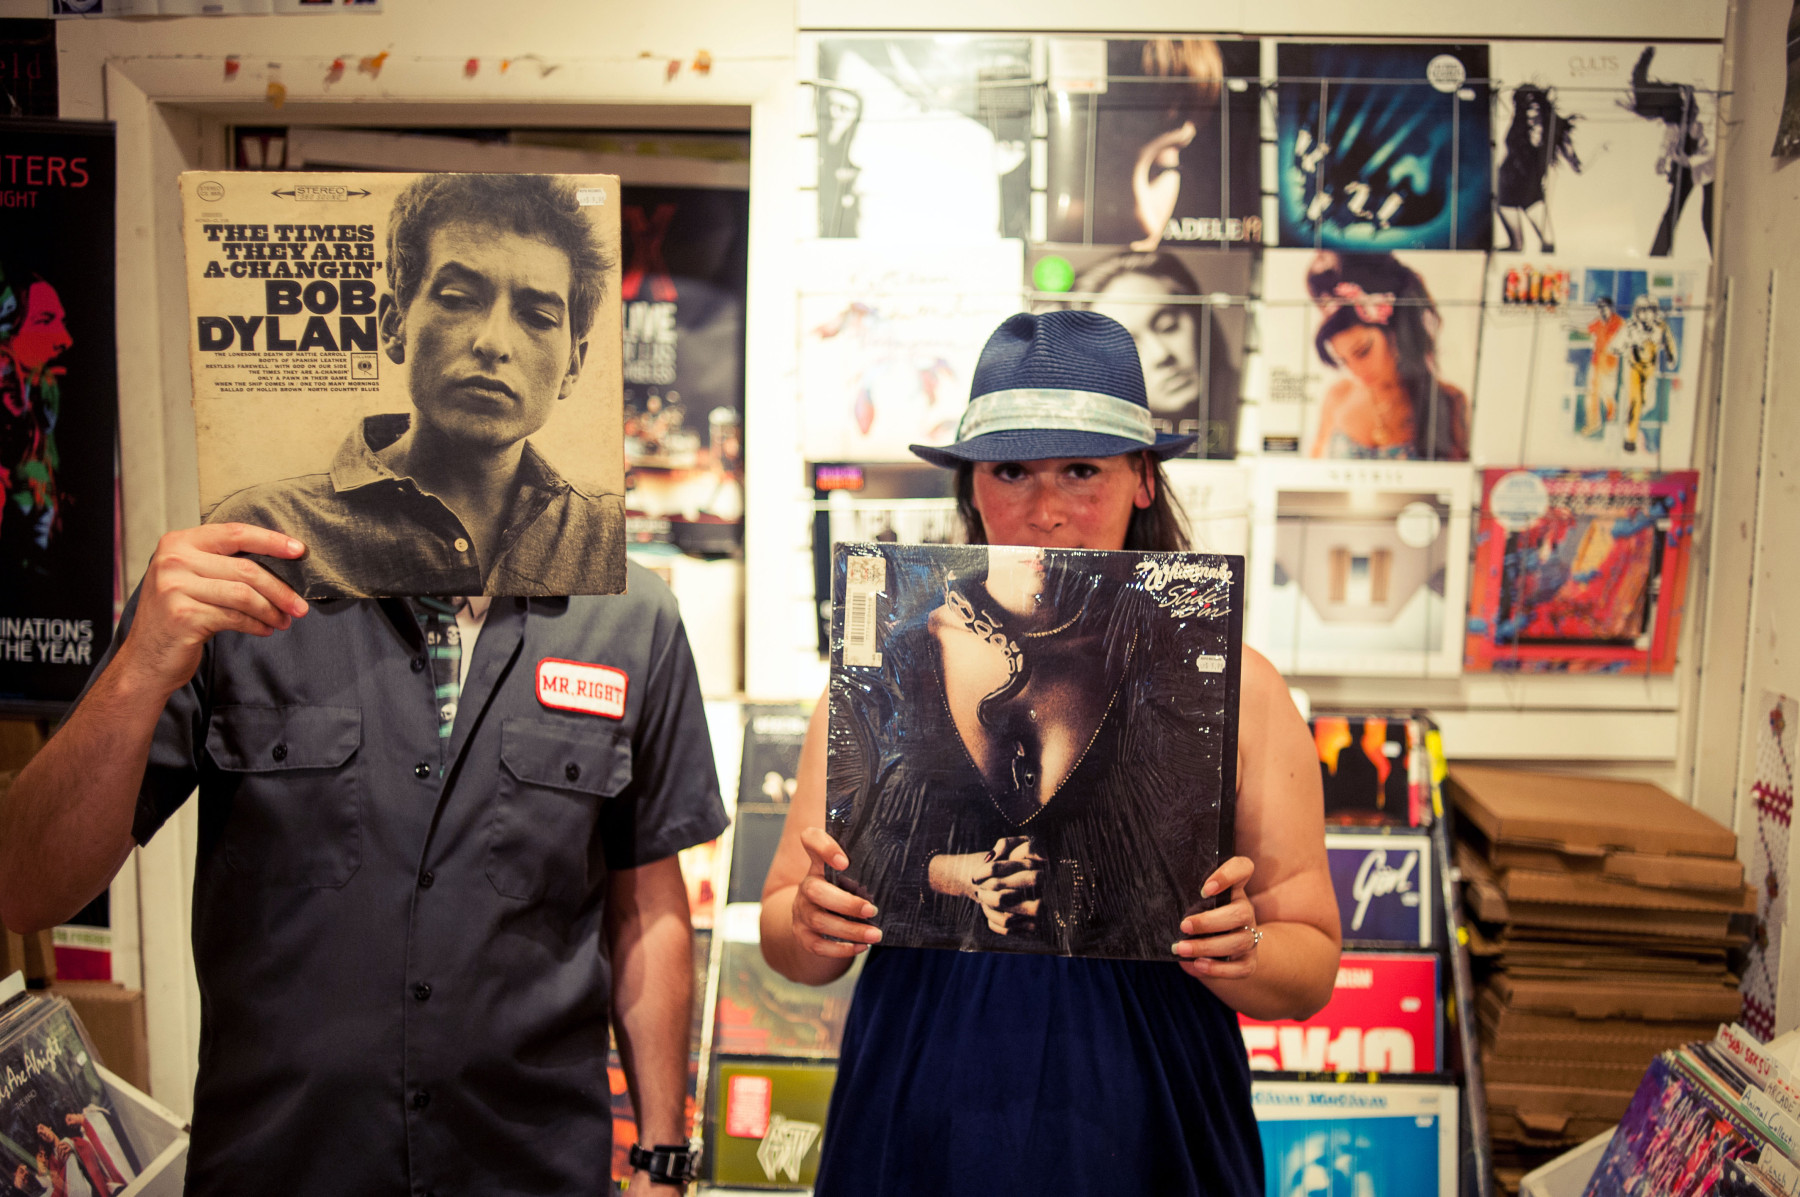 Record Store Engagement Photos in Philly Record Shop